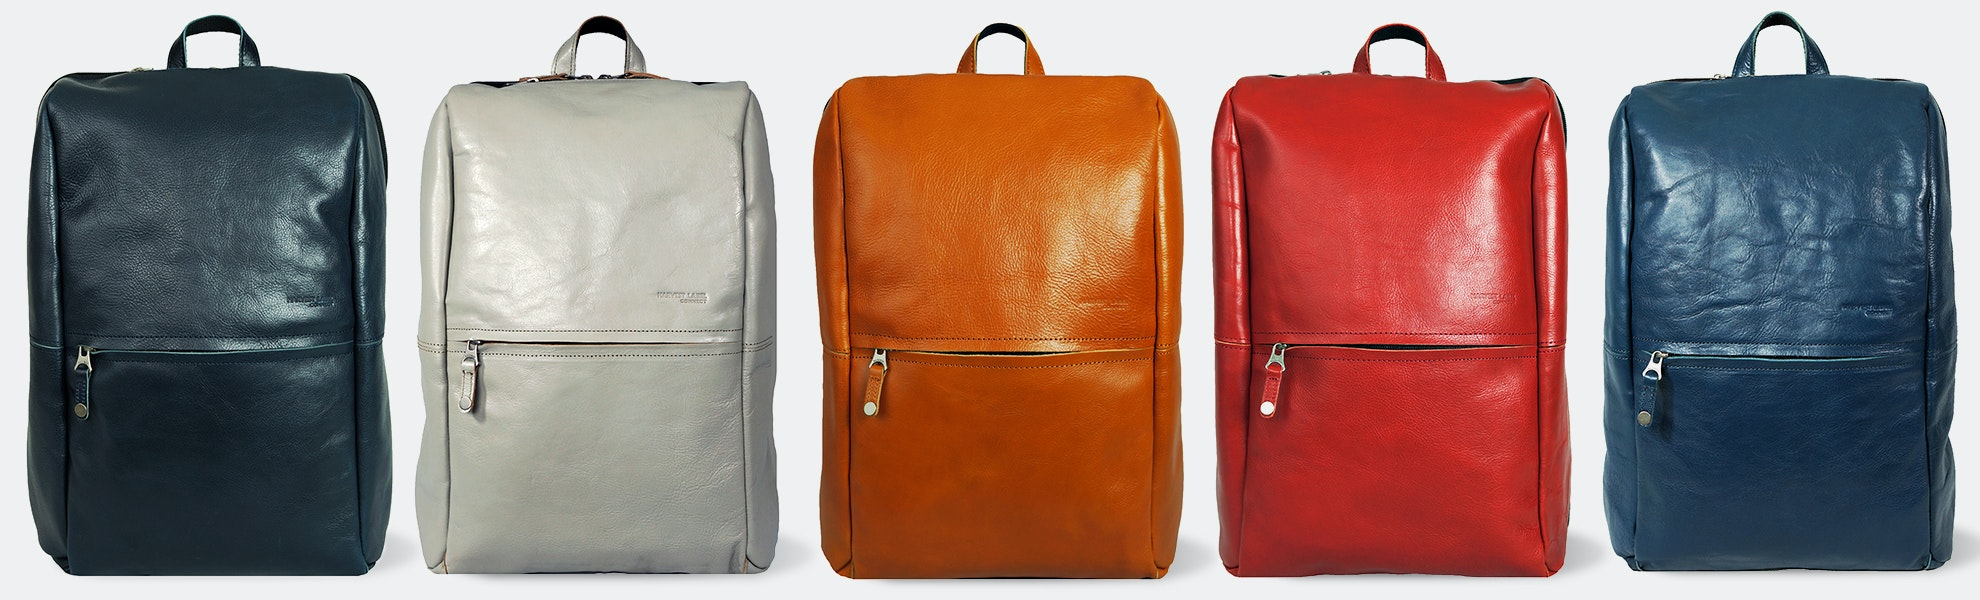 Harvest Label Leather Avenue Backpack | Price & Reviews | Massdrop